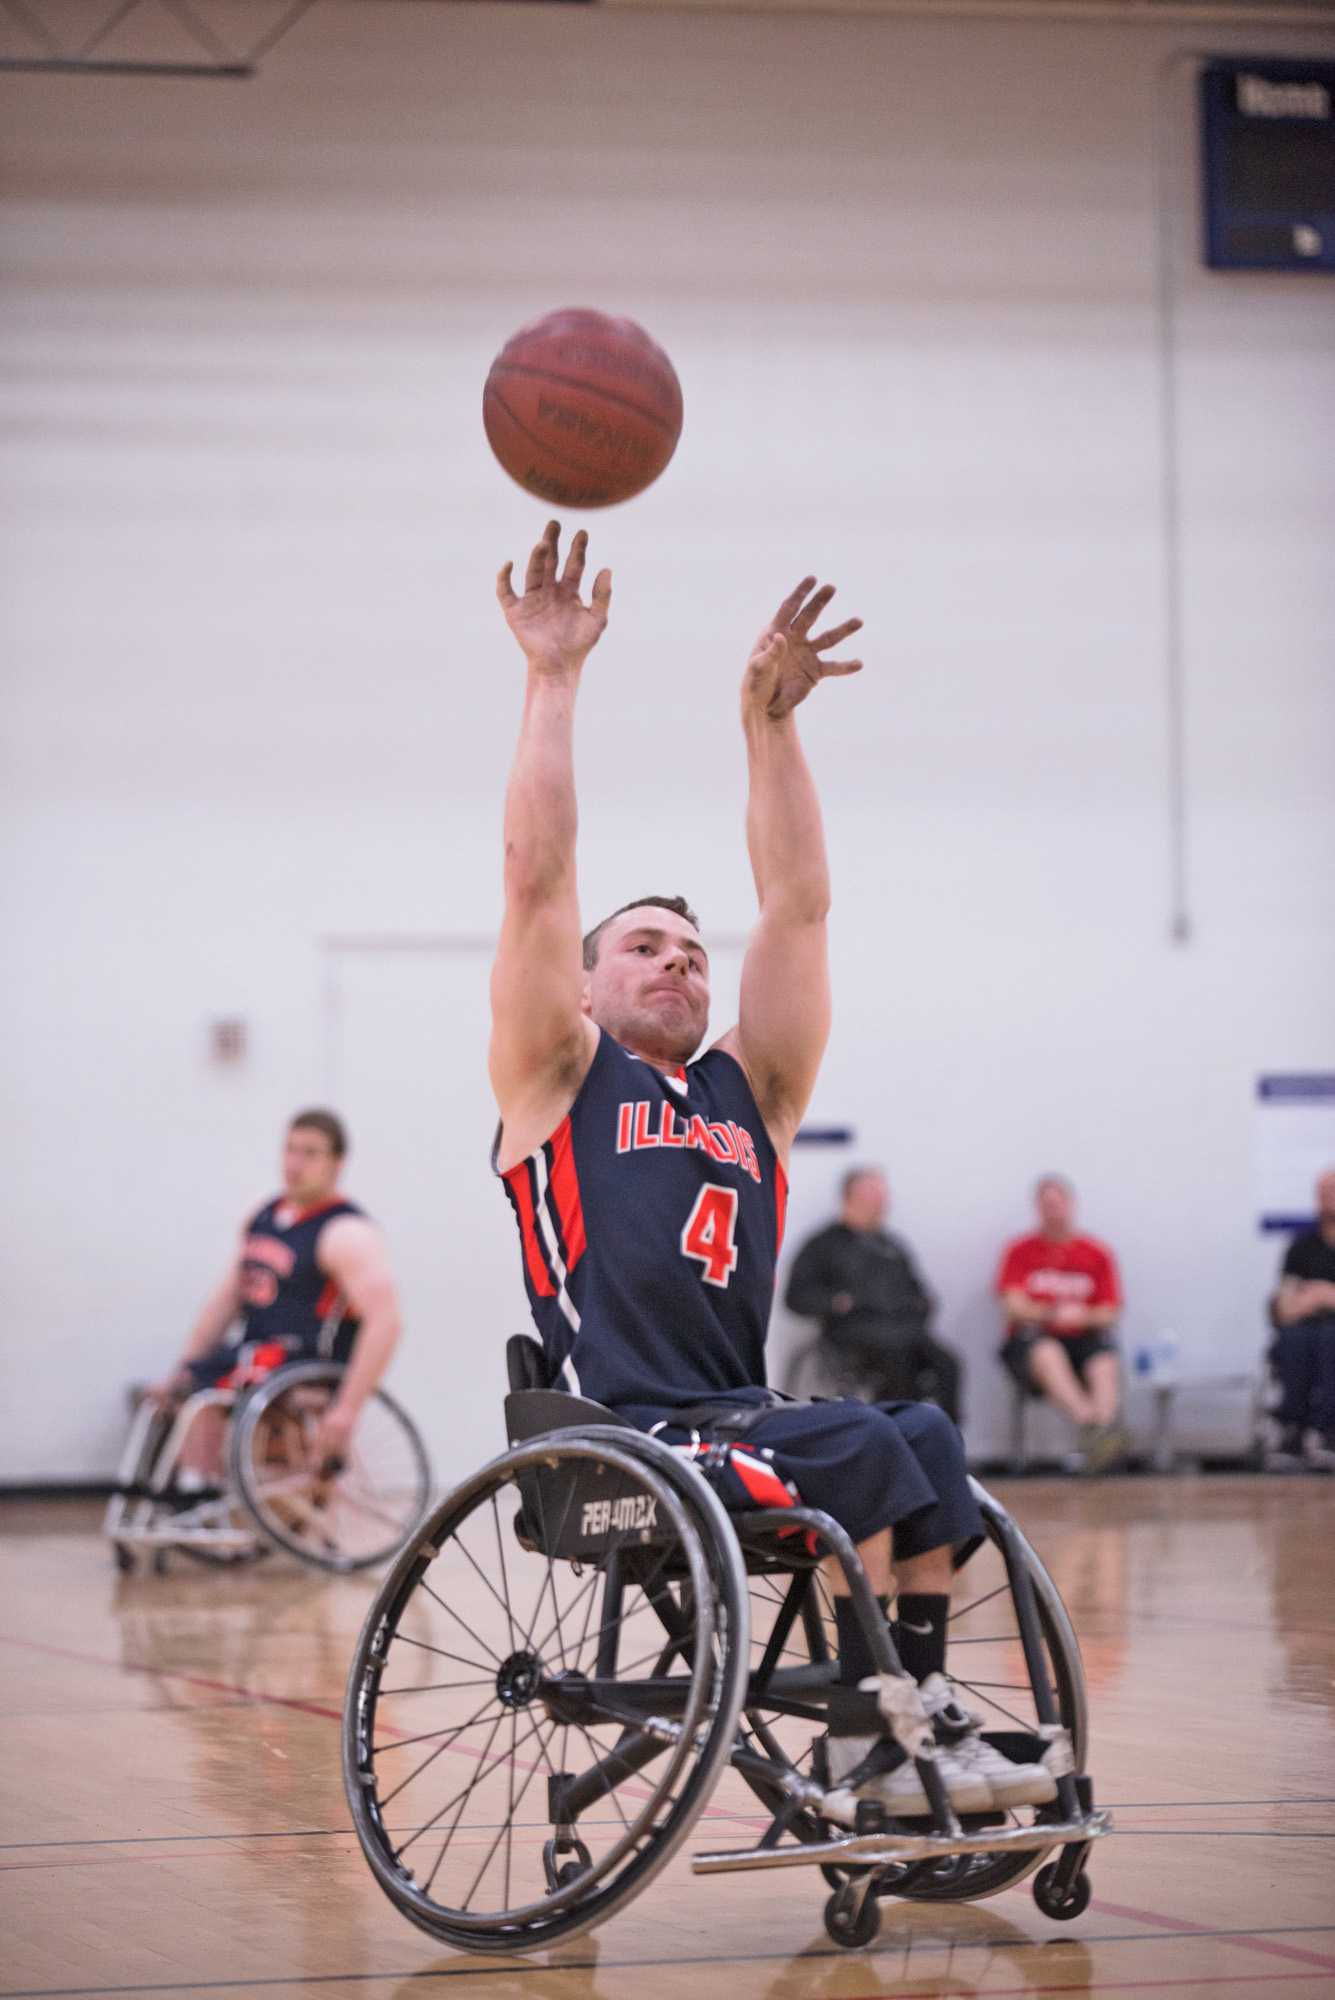 Illinois' Ryan Neiswender goes for a shot during the game against  Missouri at the Activities and Recreation Center on Friday, February 13, 2015.The Illini won 53-46.